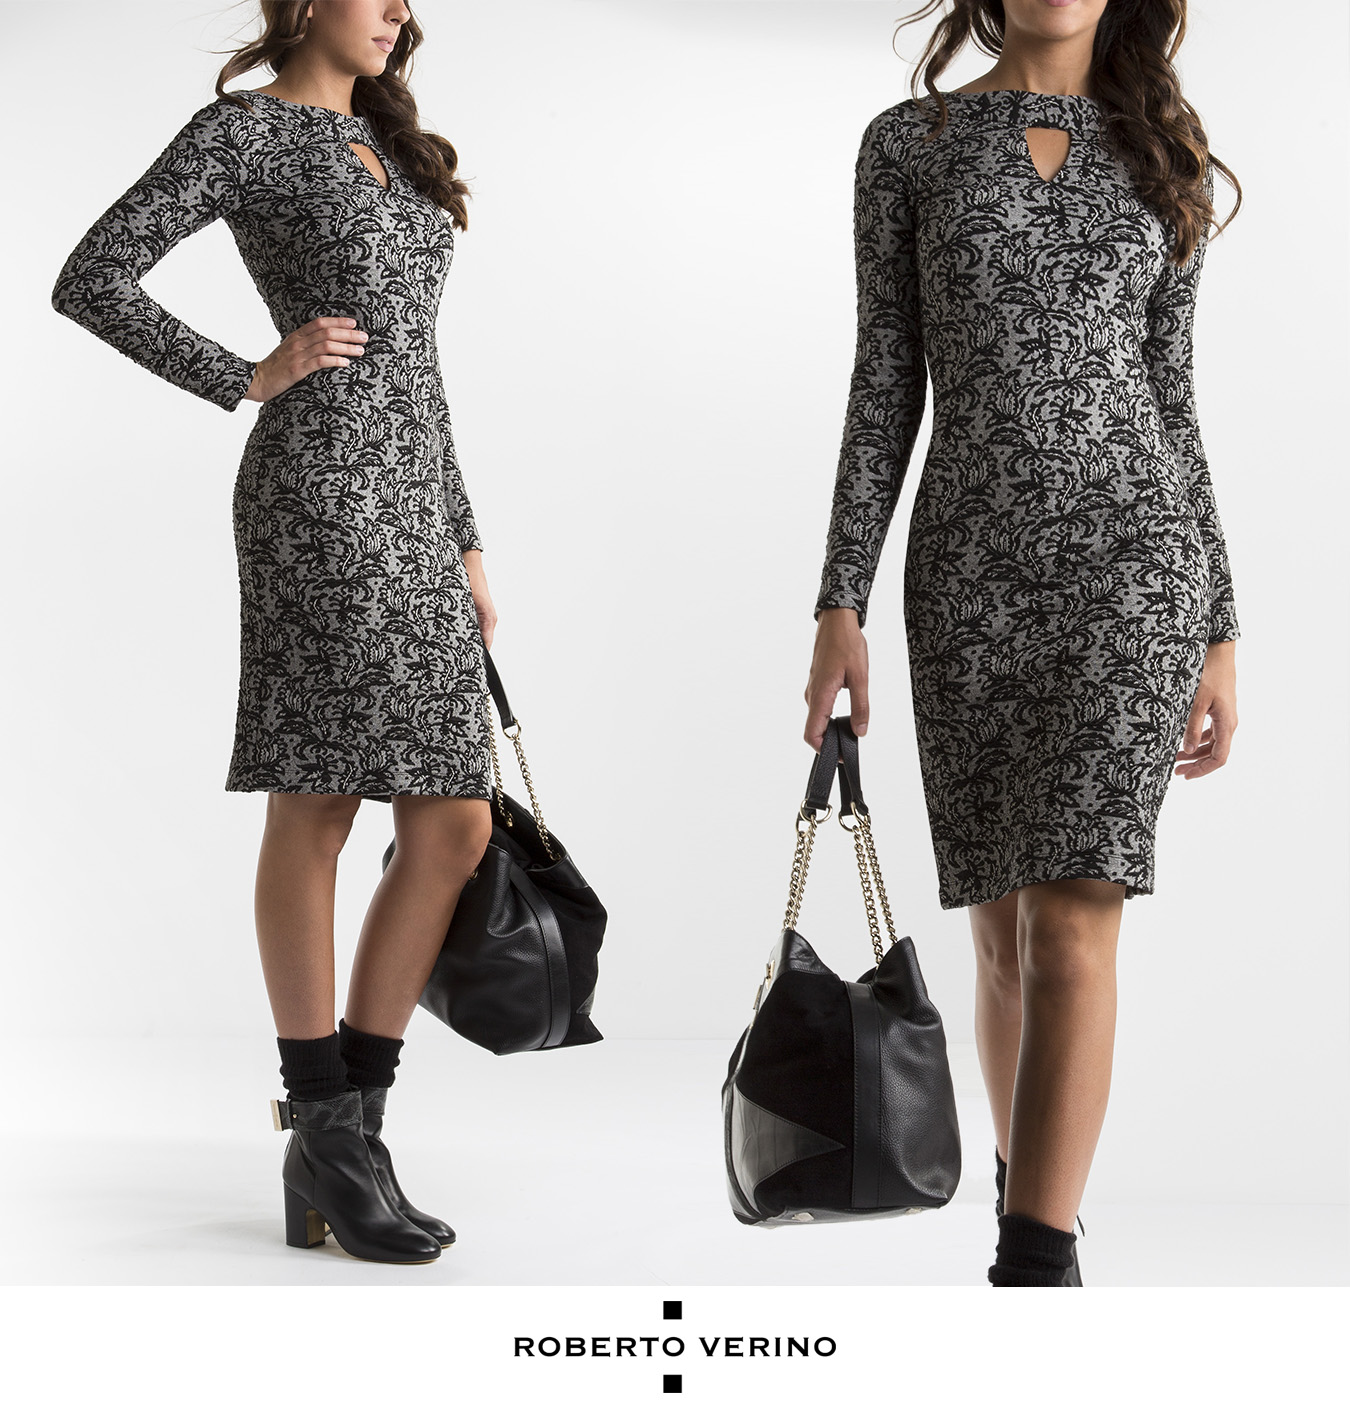 Floral print knit dress - Roberto Verino